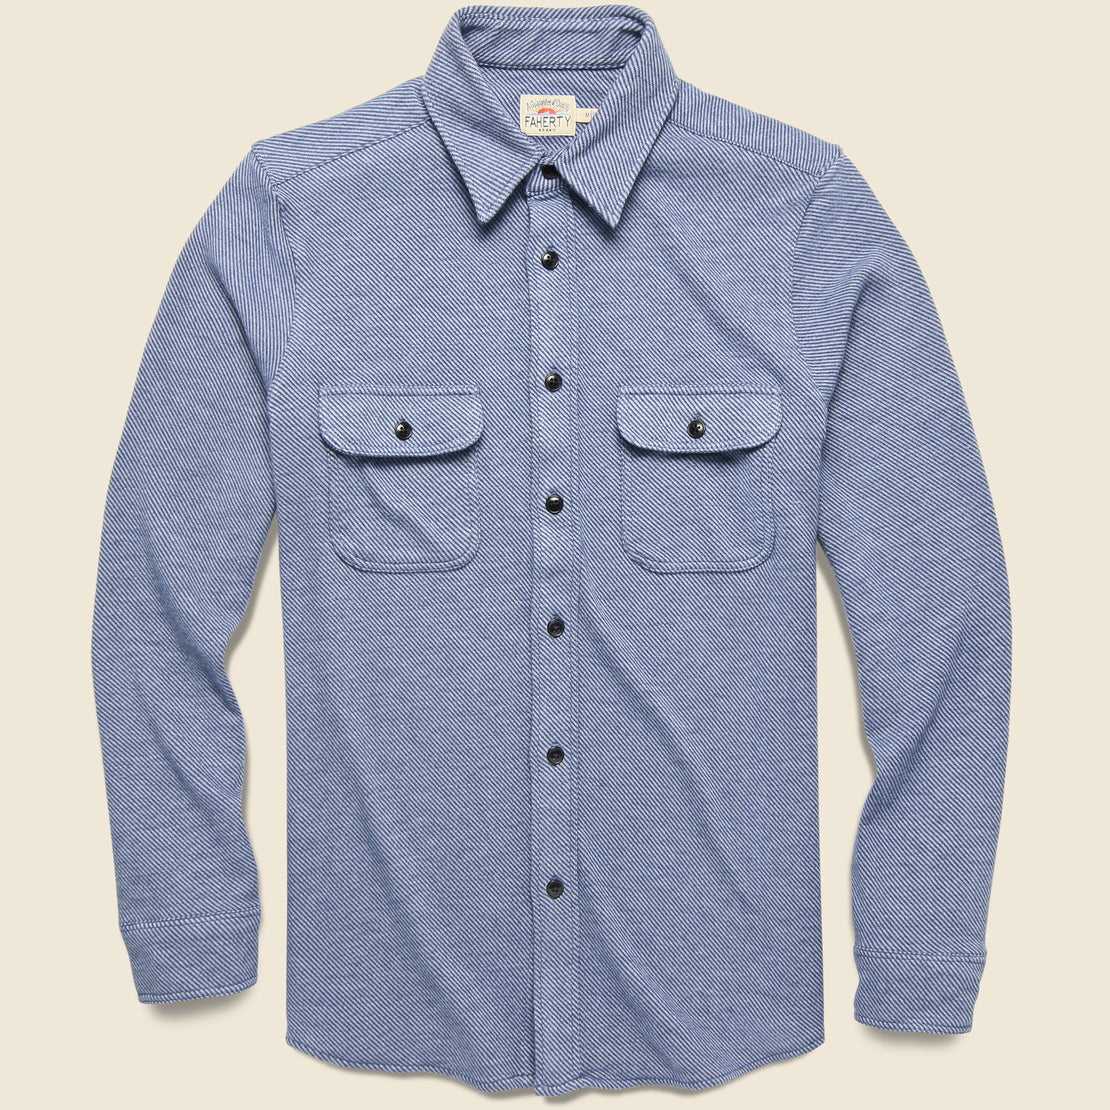 Faherty Legend Sweater Shirt - Washed Blue